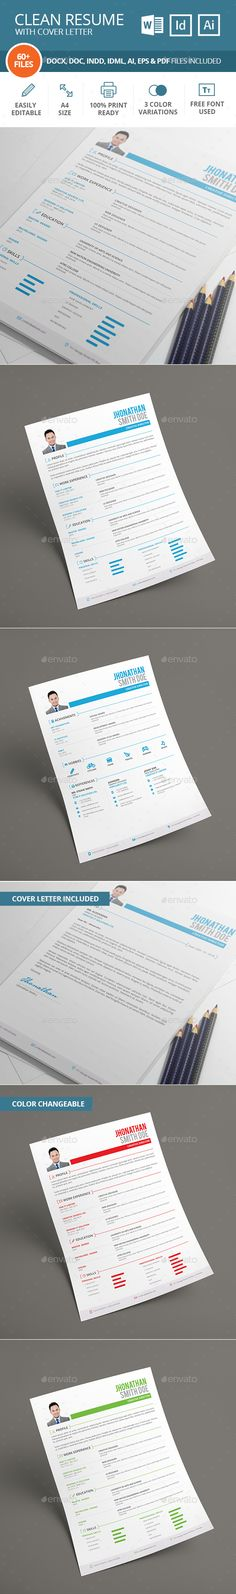 Resume Template PSD, Vector EPS, InDesign INDD, AI, MS Word Resume